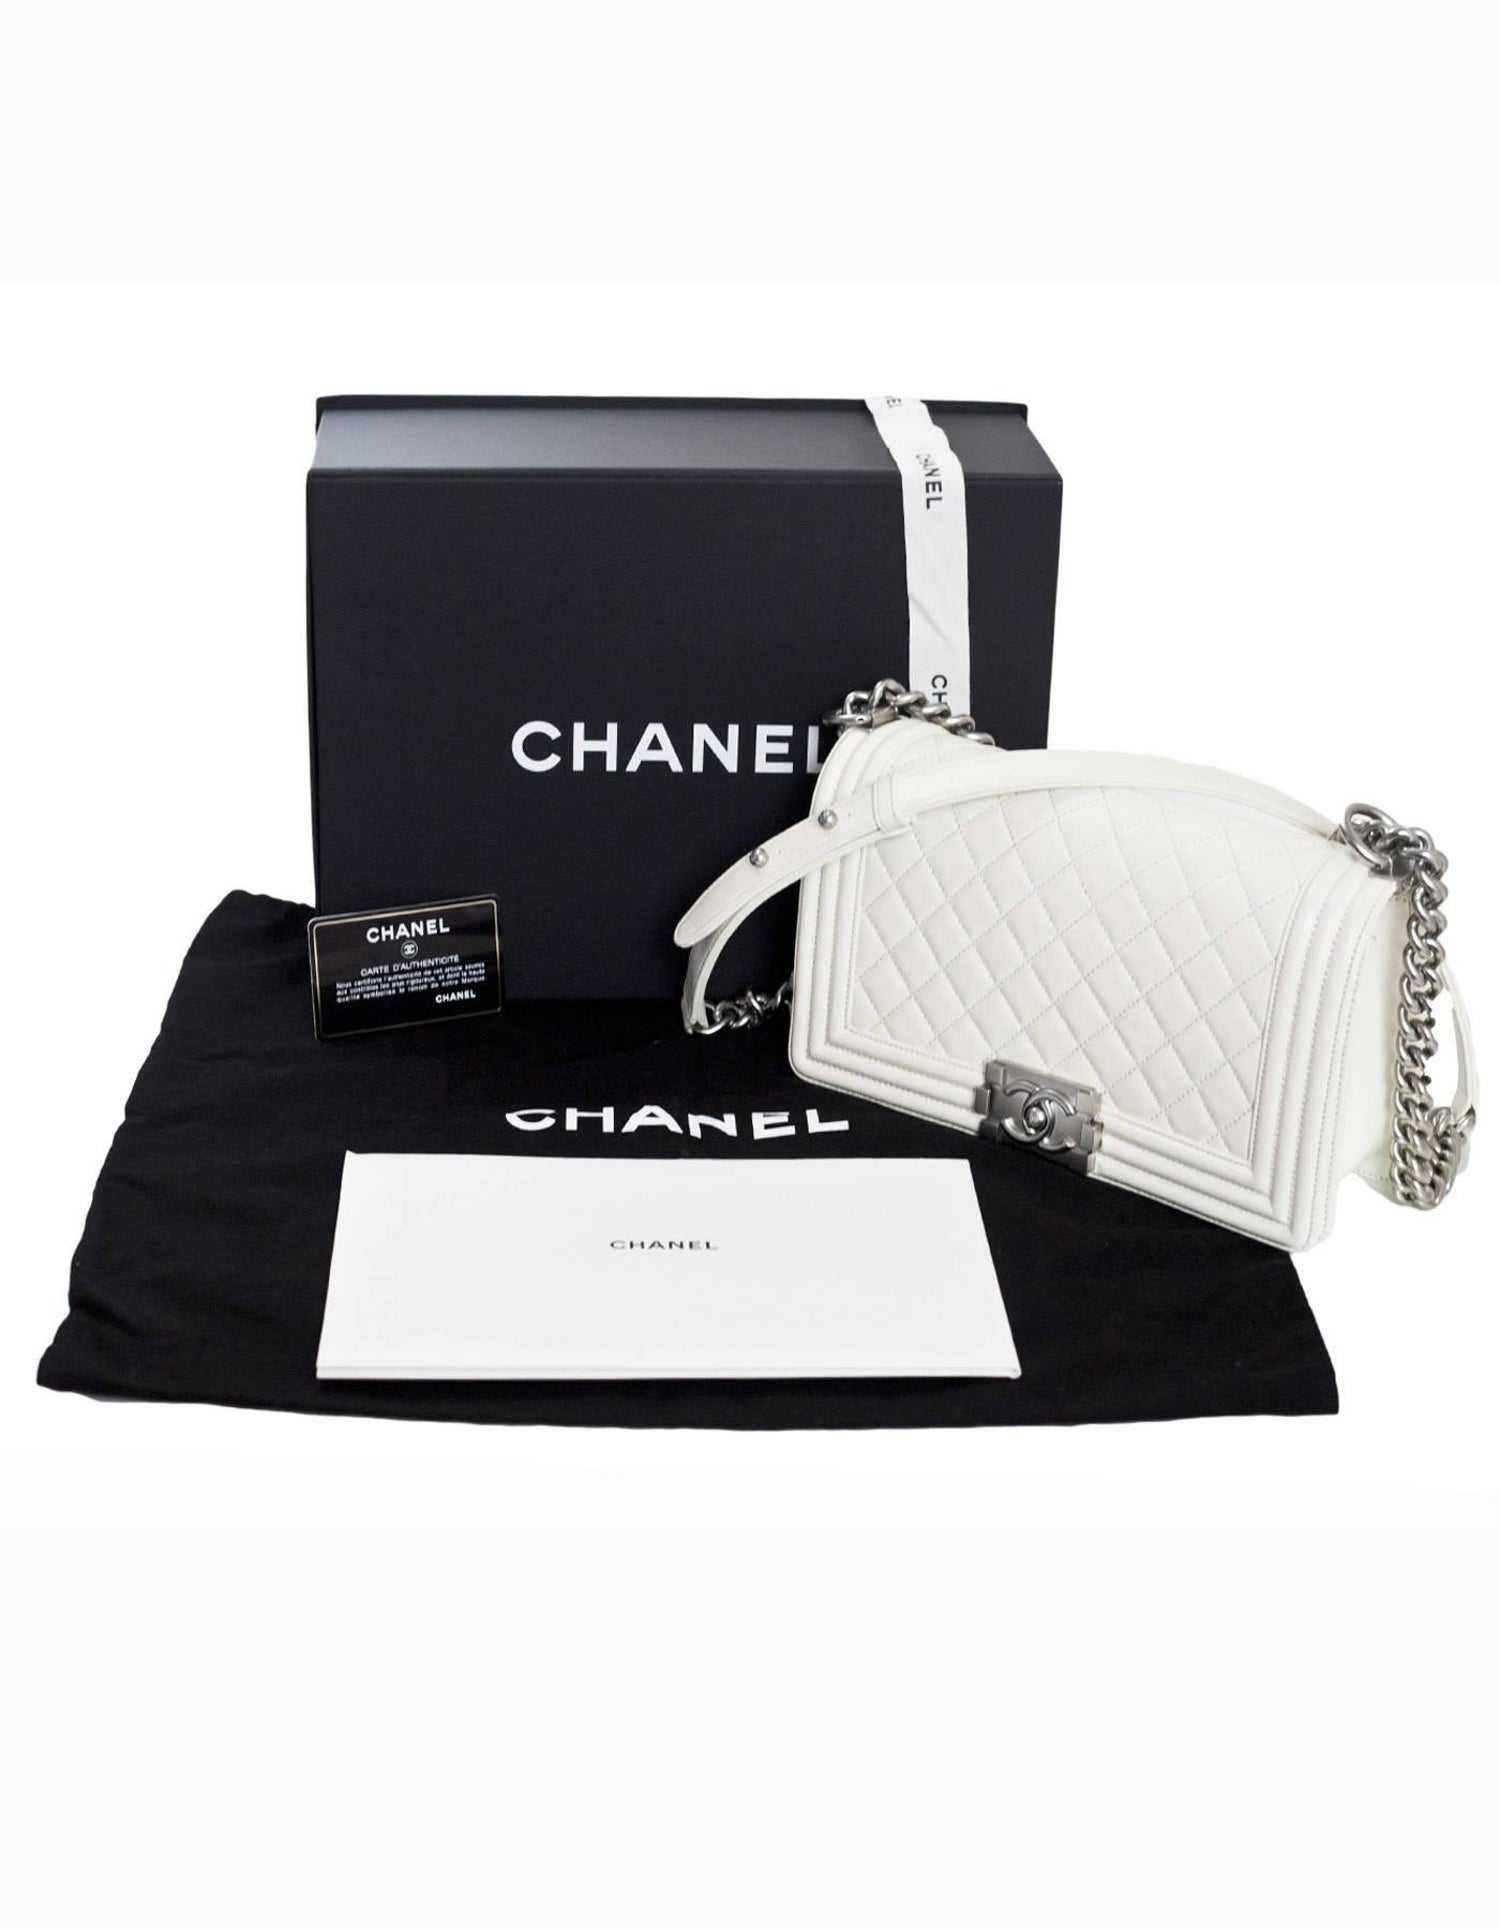 663ffc606770 Chanel White Quilted Leather Medium Boy Bag SHW rt. $4,700 For Sale at  1stdibs